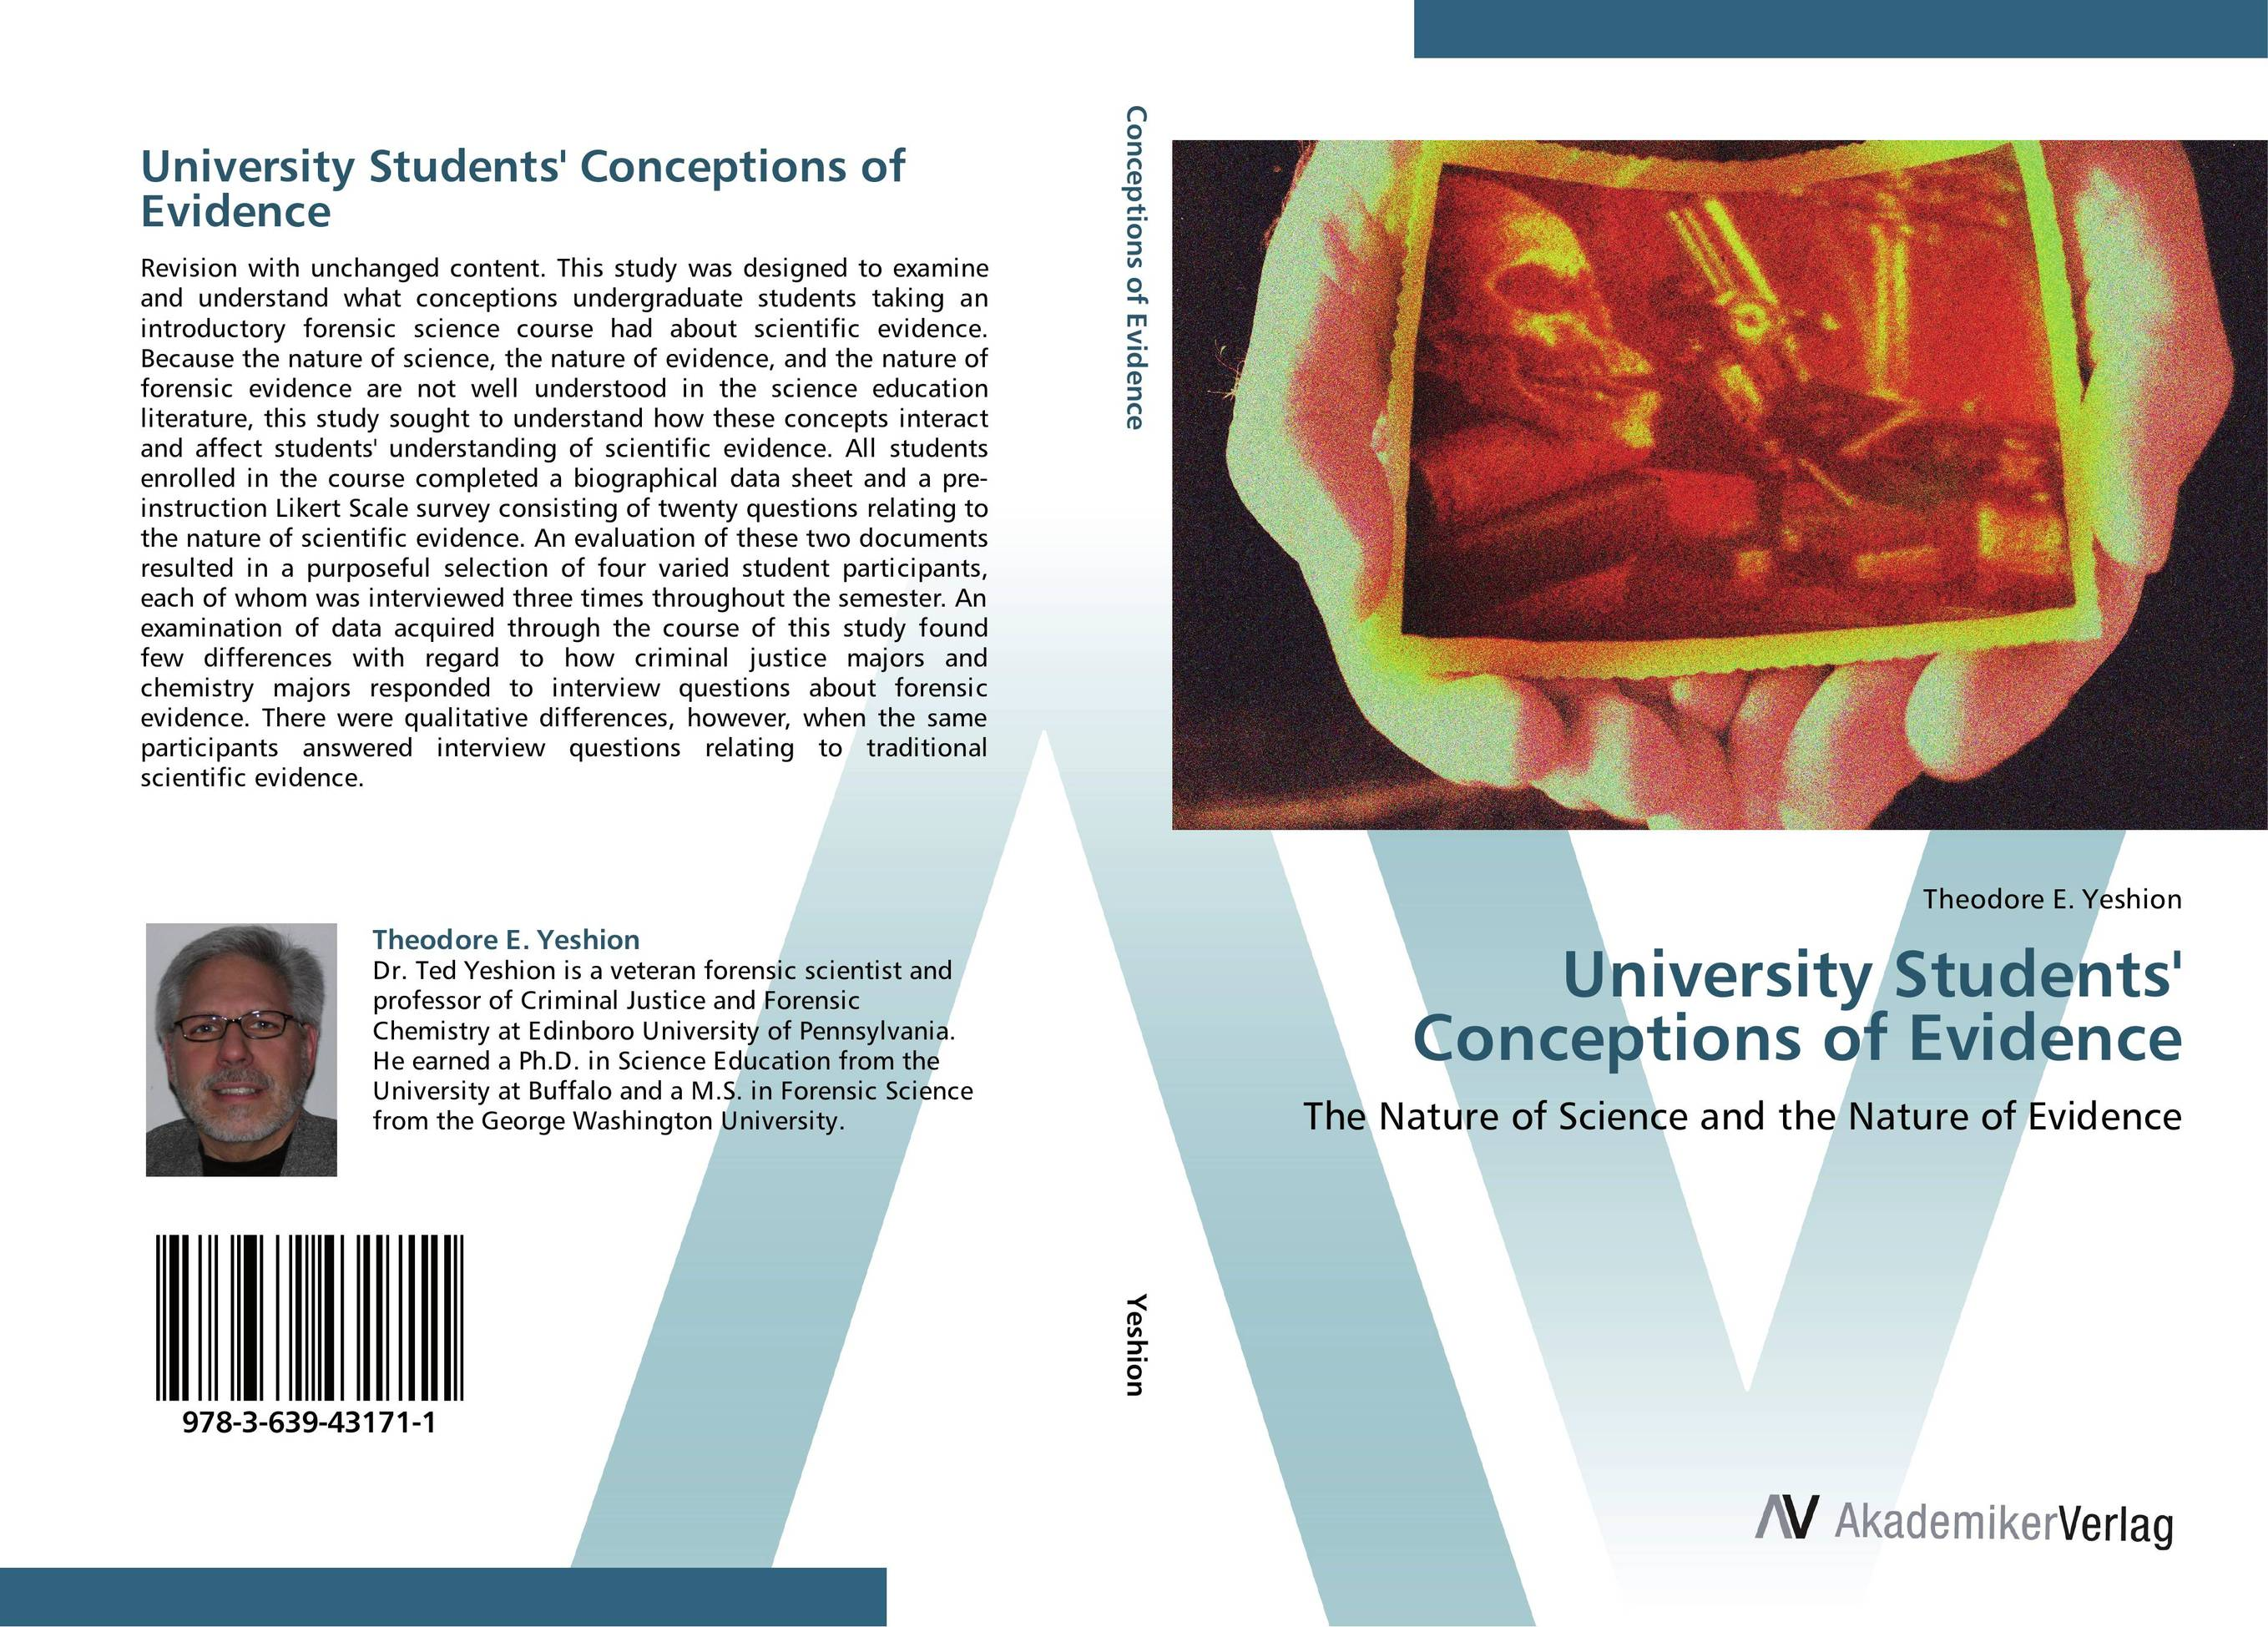 University Students' Conceptions of Evidence fundamentals of forensic science